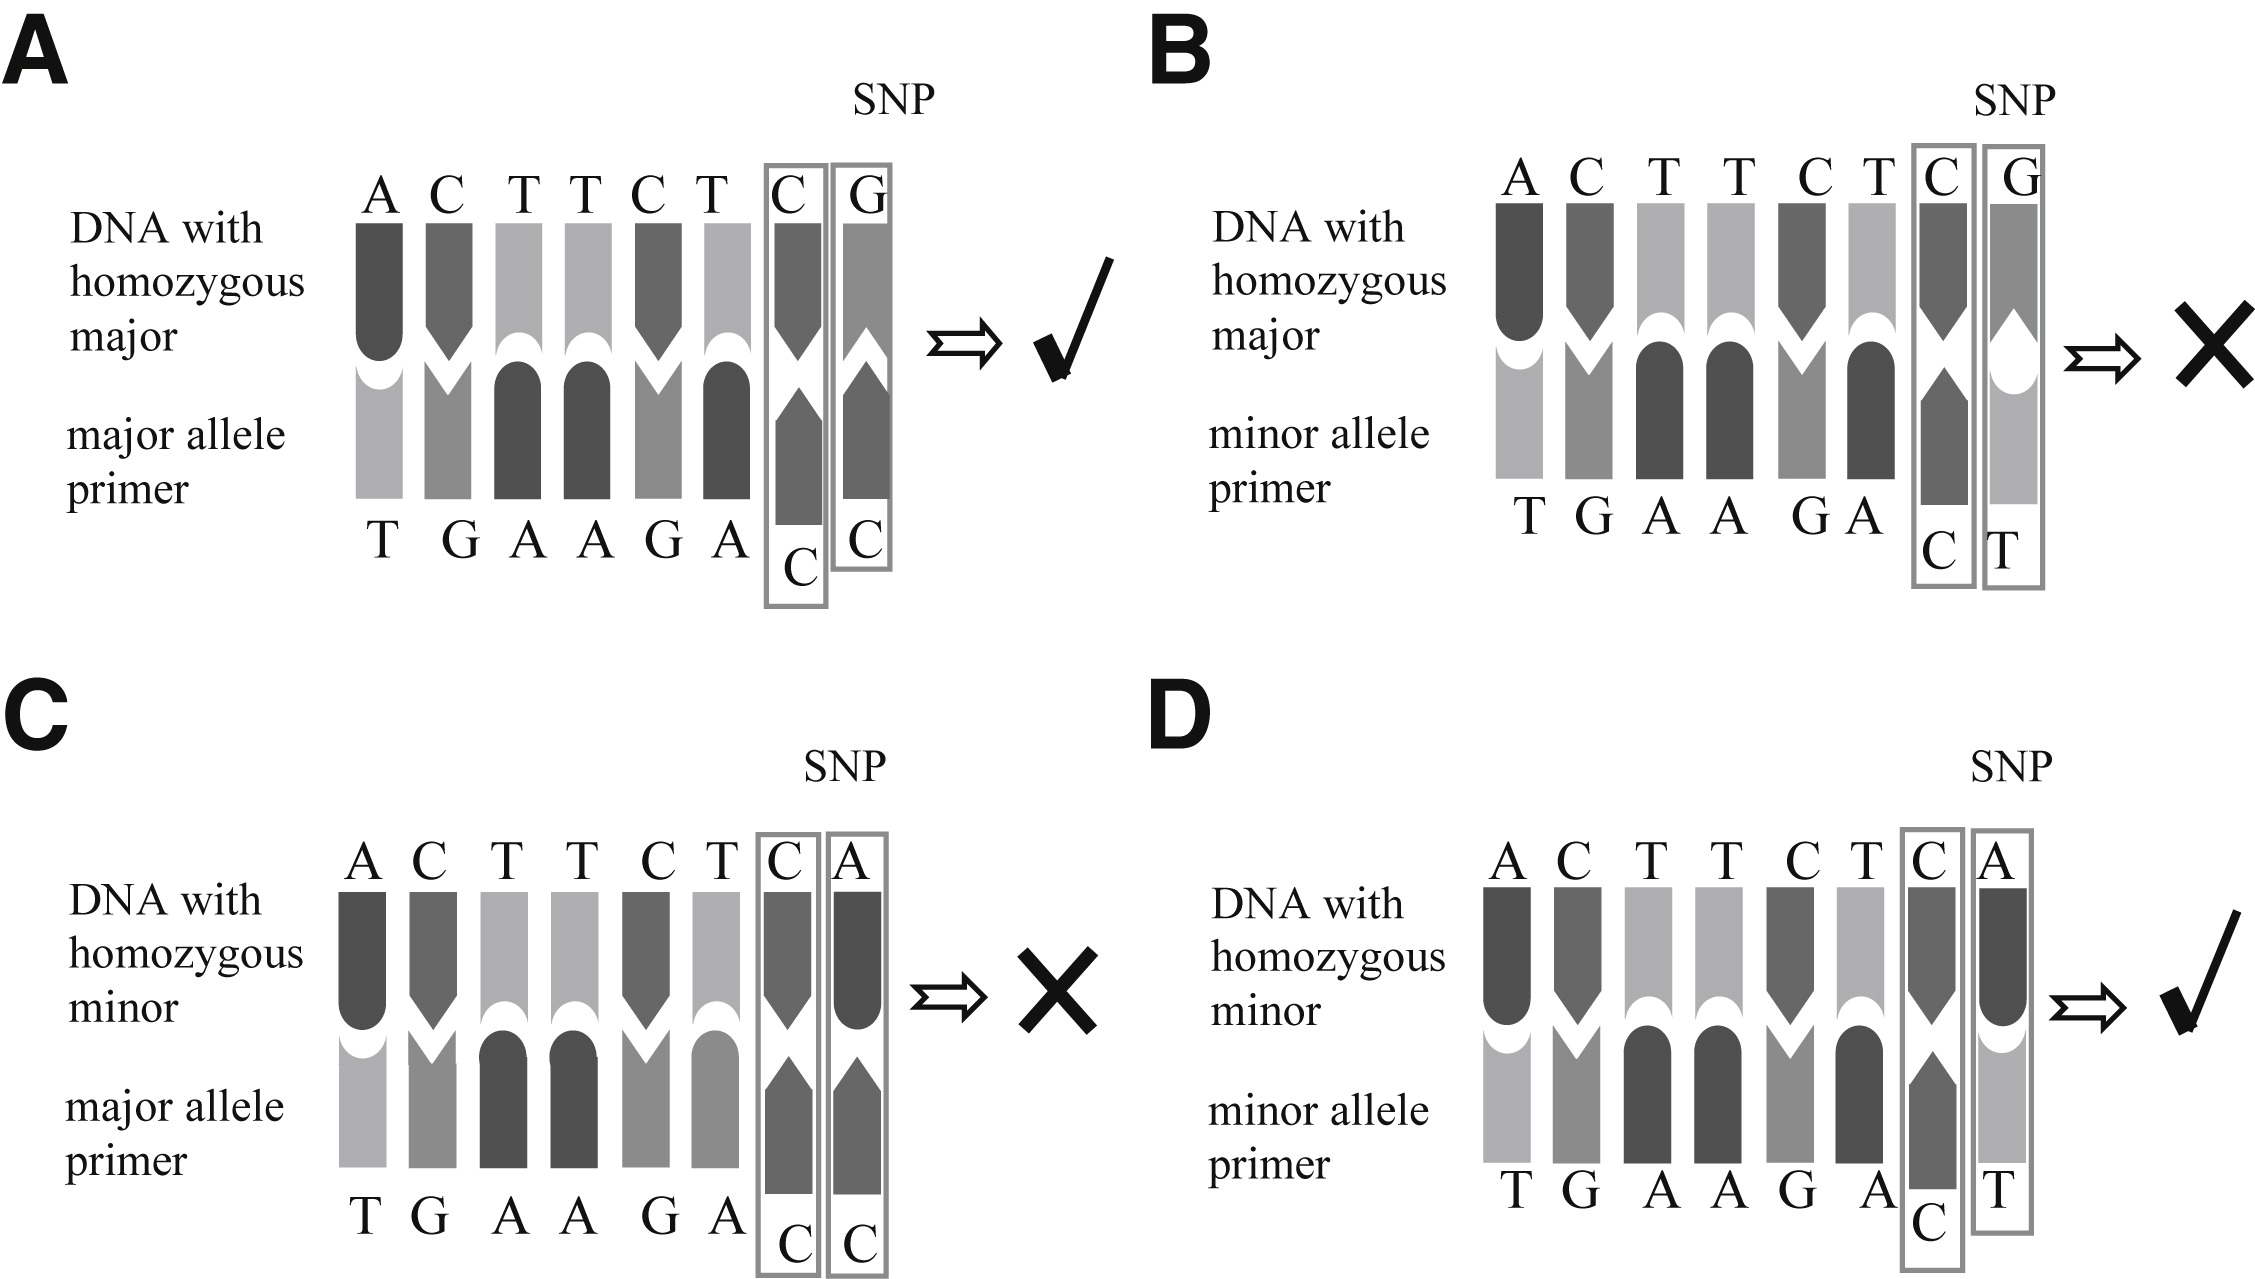 Genotyping Single Nucleotide Polymorphisms in Human